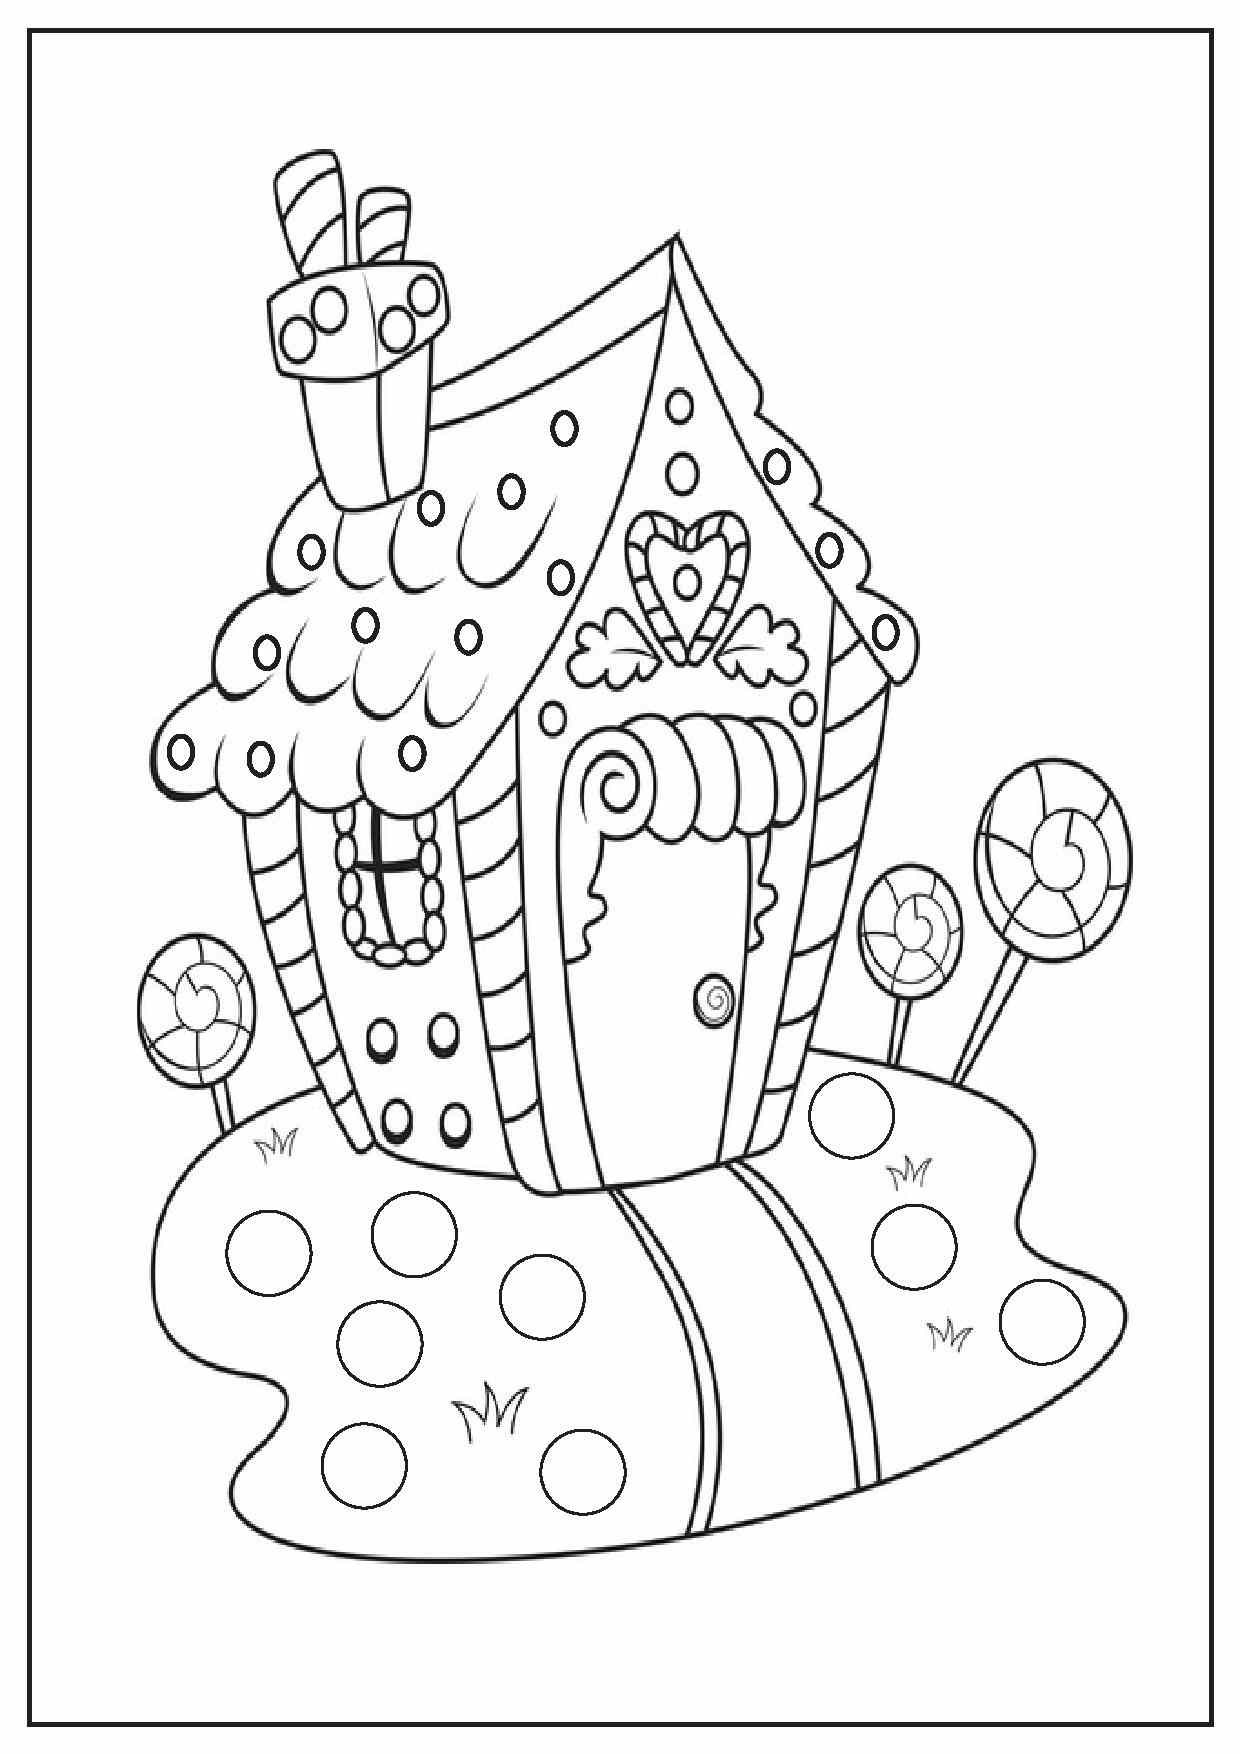 Christmas Coloring Pages Small With Tree Archives Codraw Co